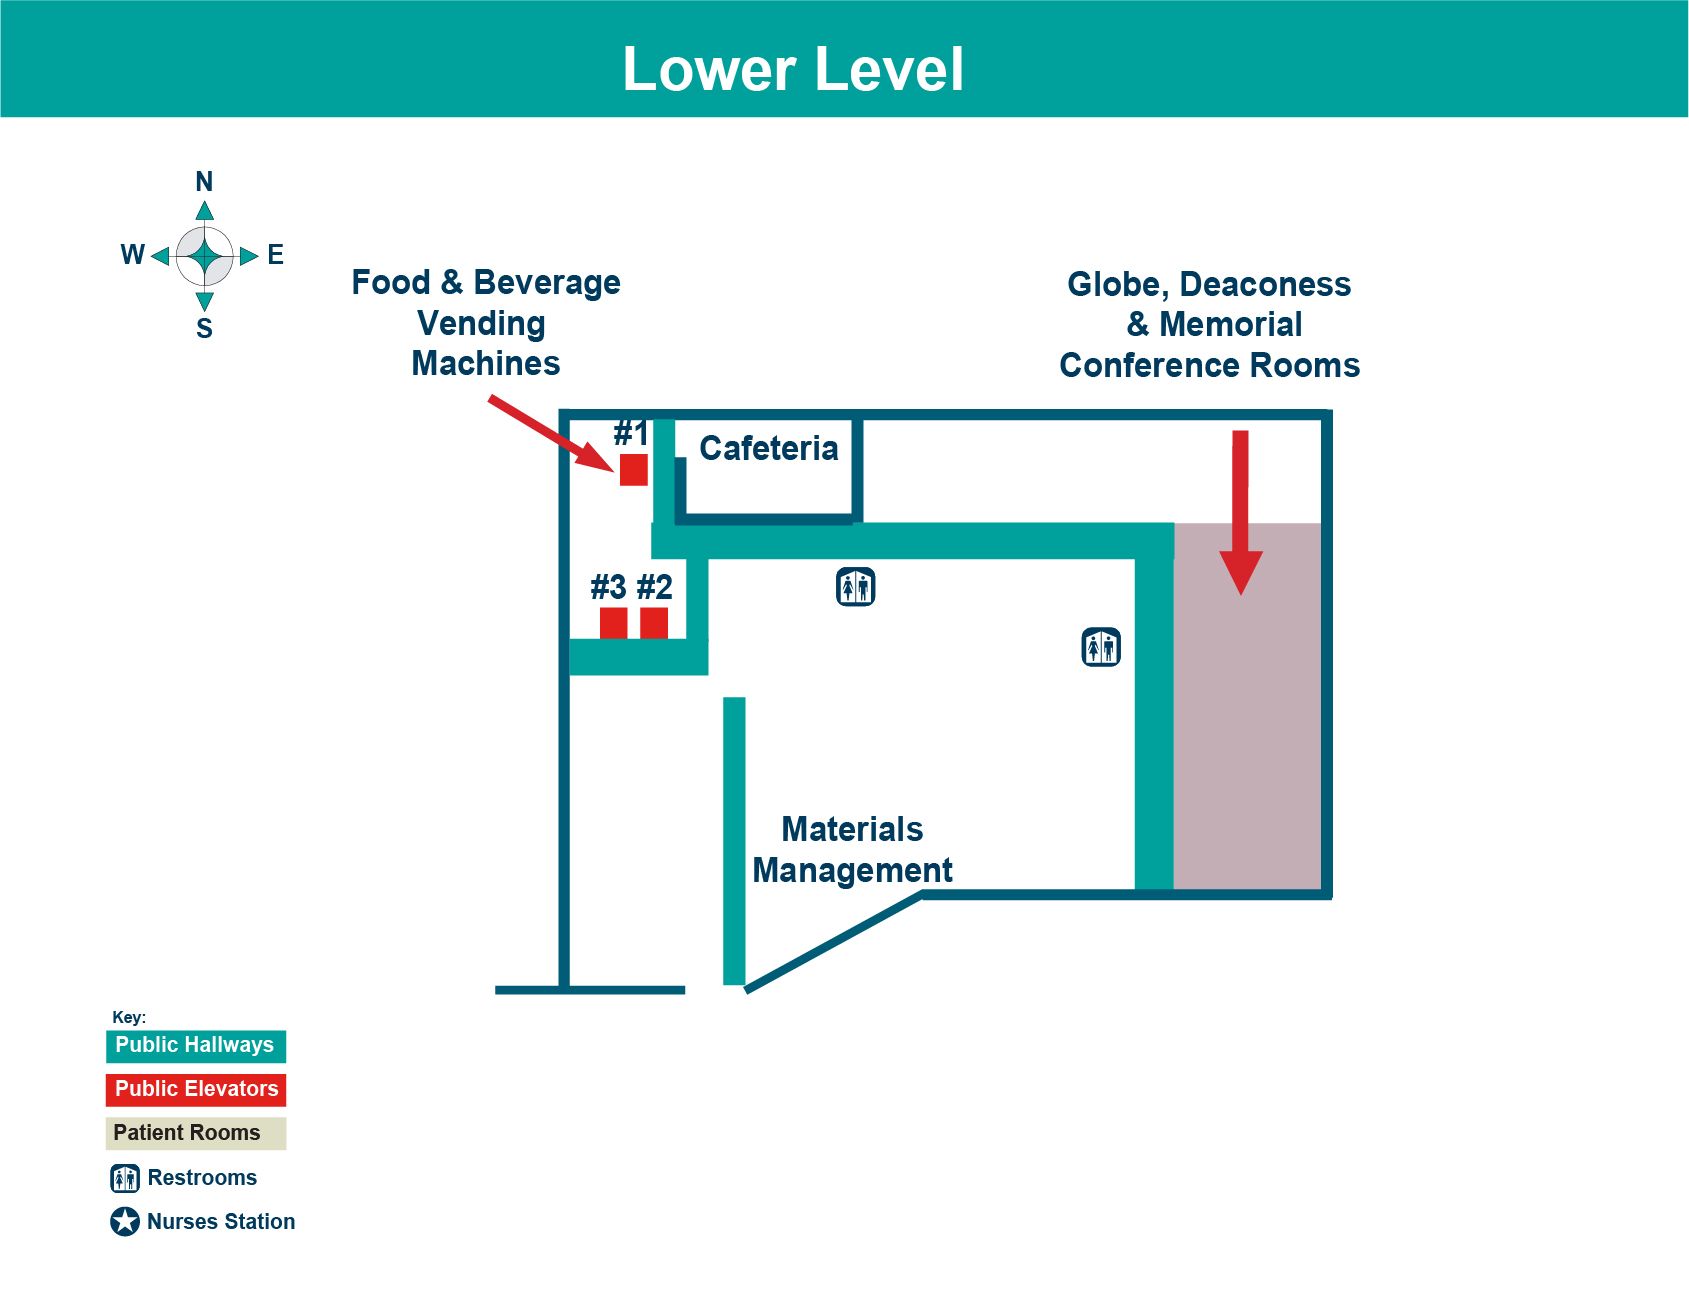 FHN Memorial Hospital lower level layout